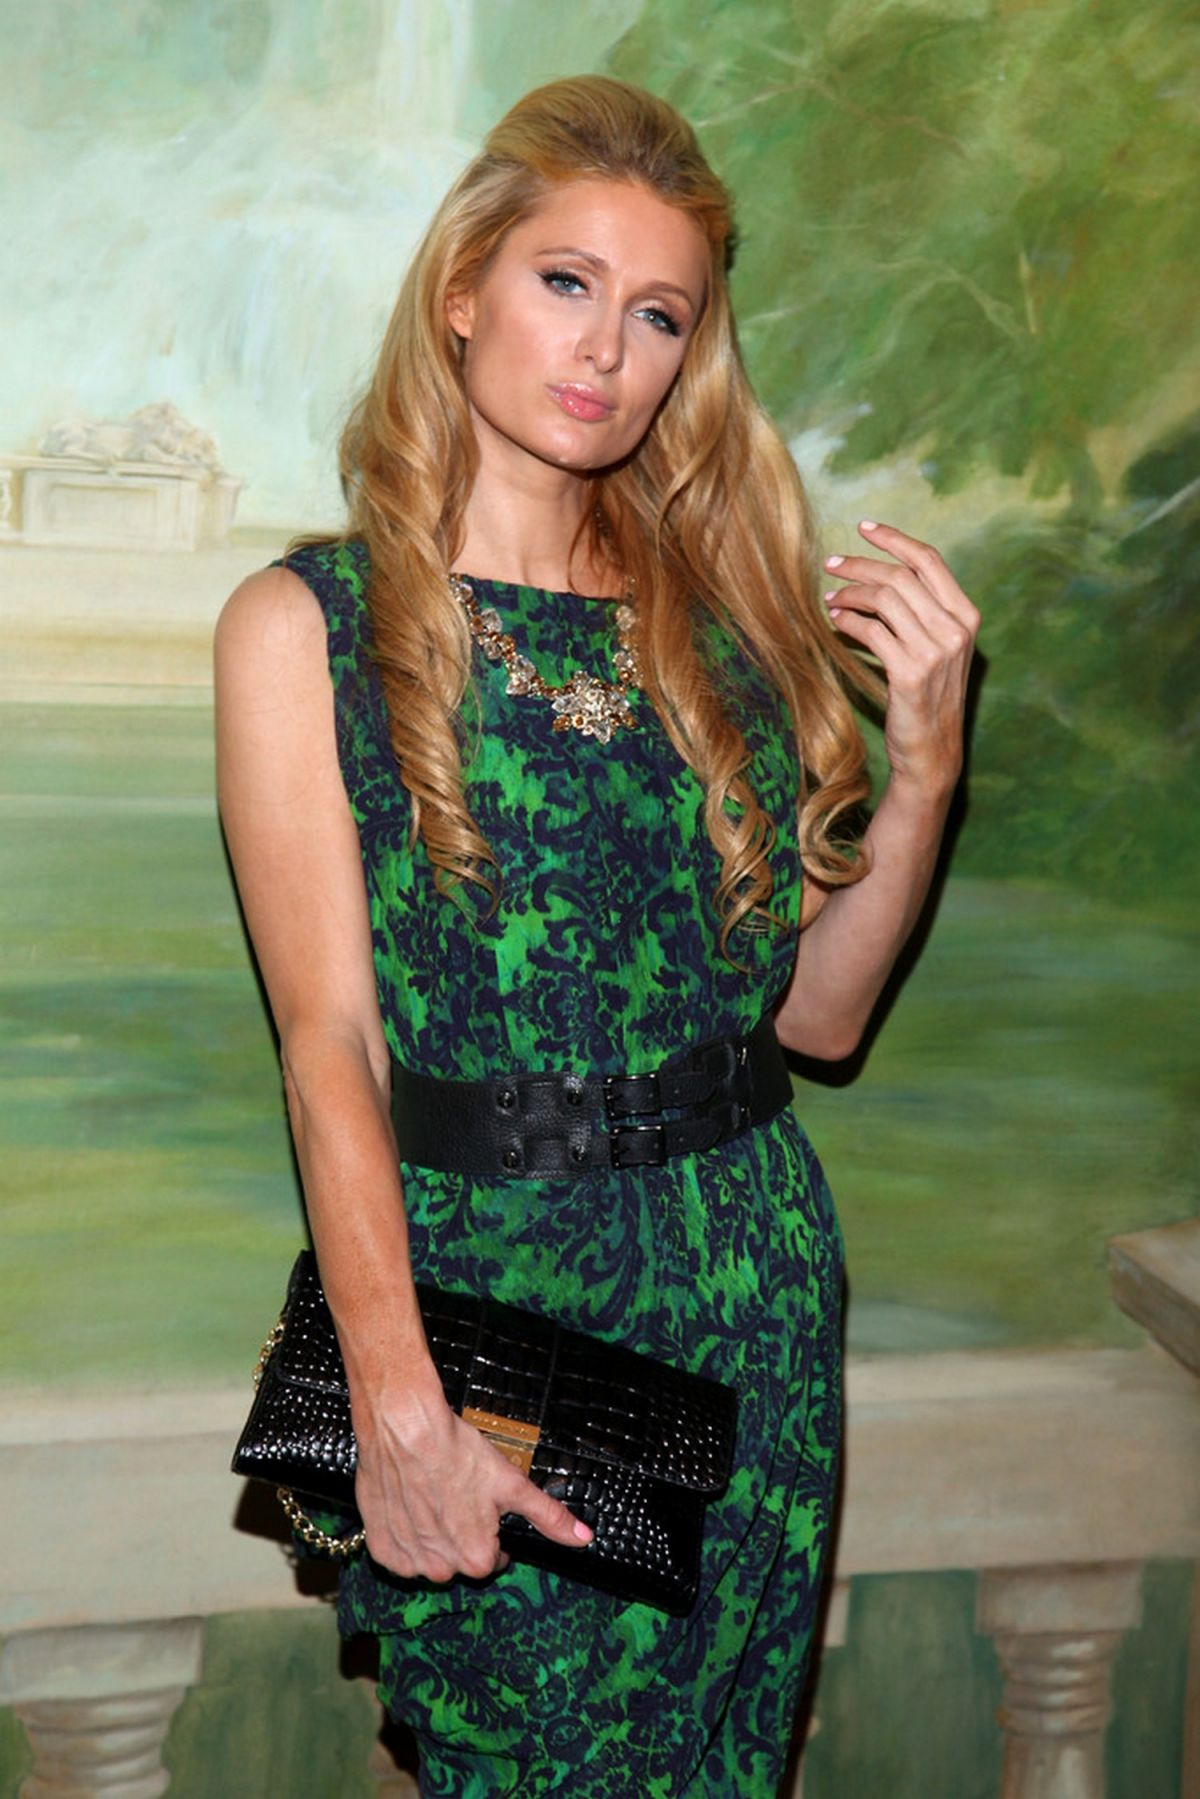 PARIS HILTON at Alice+Olivia by Stacey Bendet Fashion Show in New York